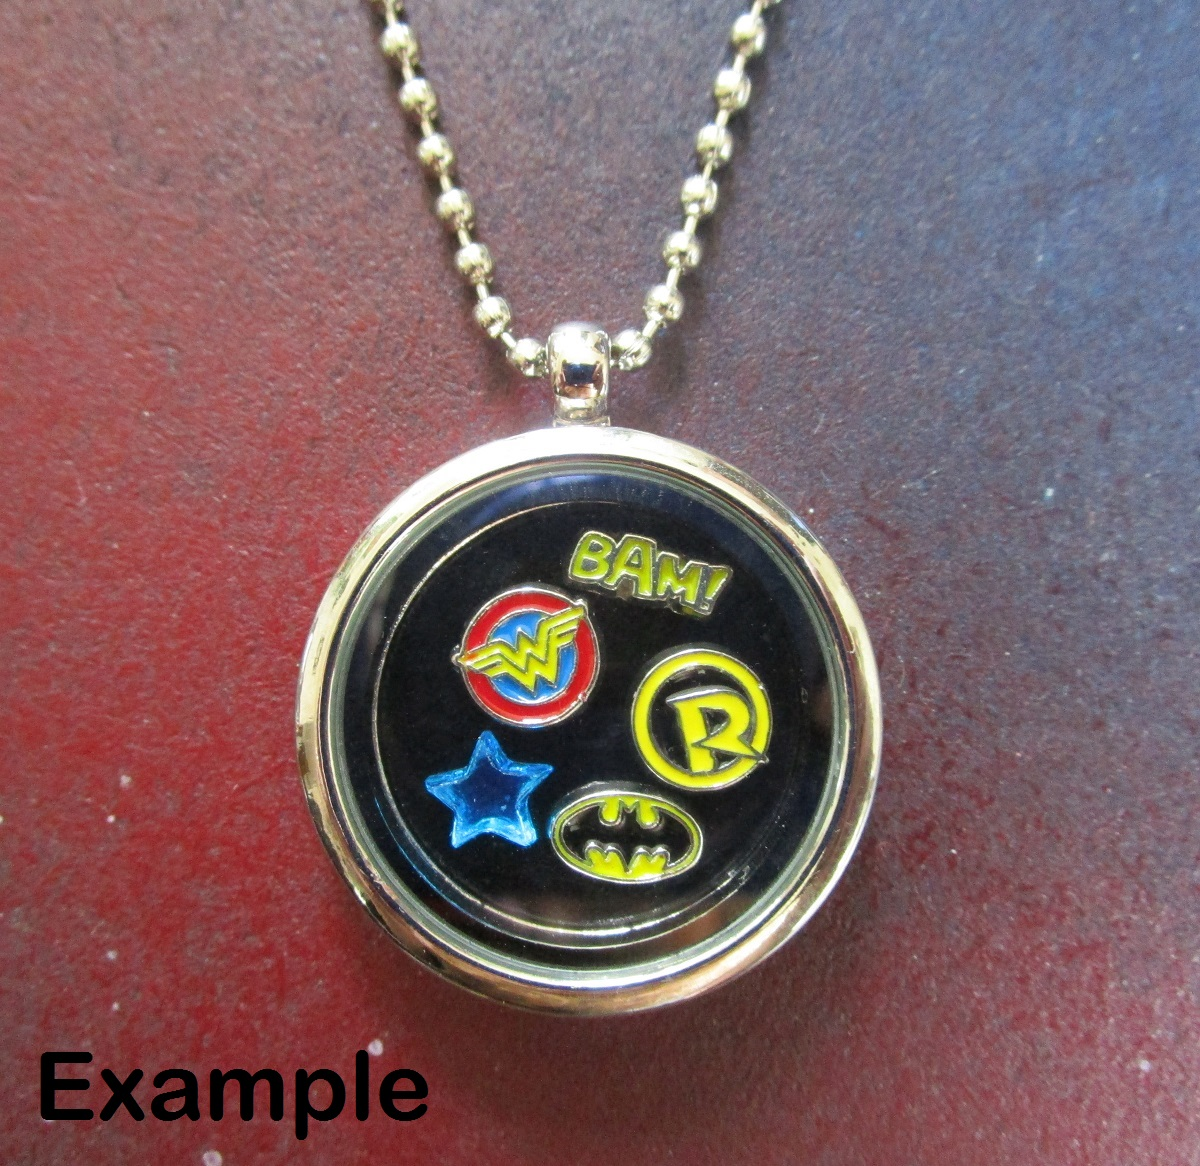 Floating Charm Memories Lockets – Now in Nerd